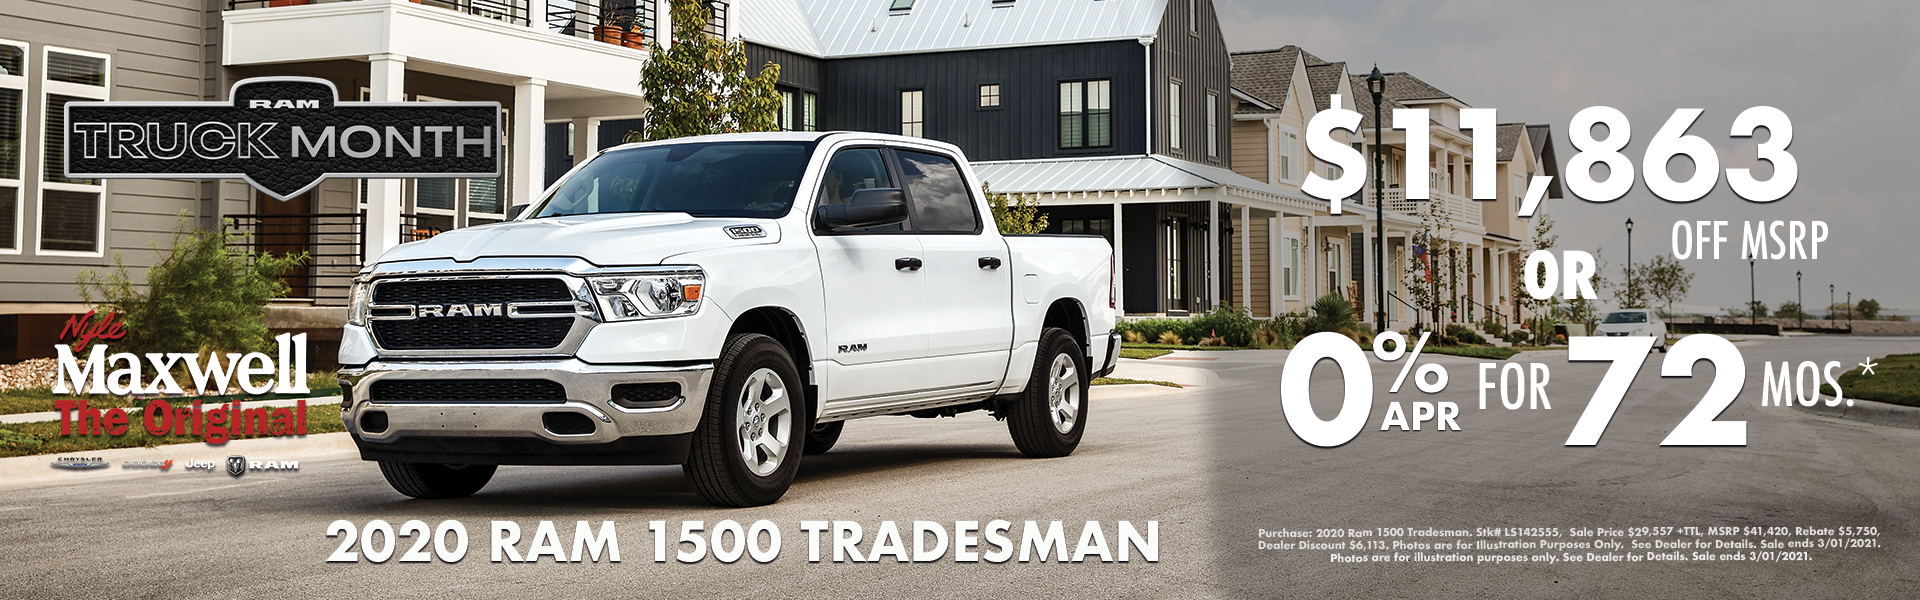 NMT Graphic – Web Banner (1920×600) RAM 1500 TRADESMAN TRUCK MONTH – 02.2021